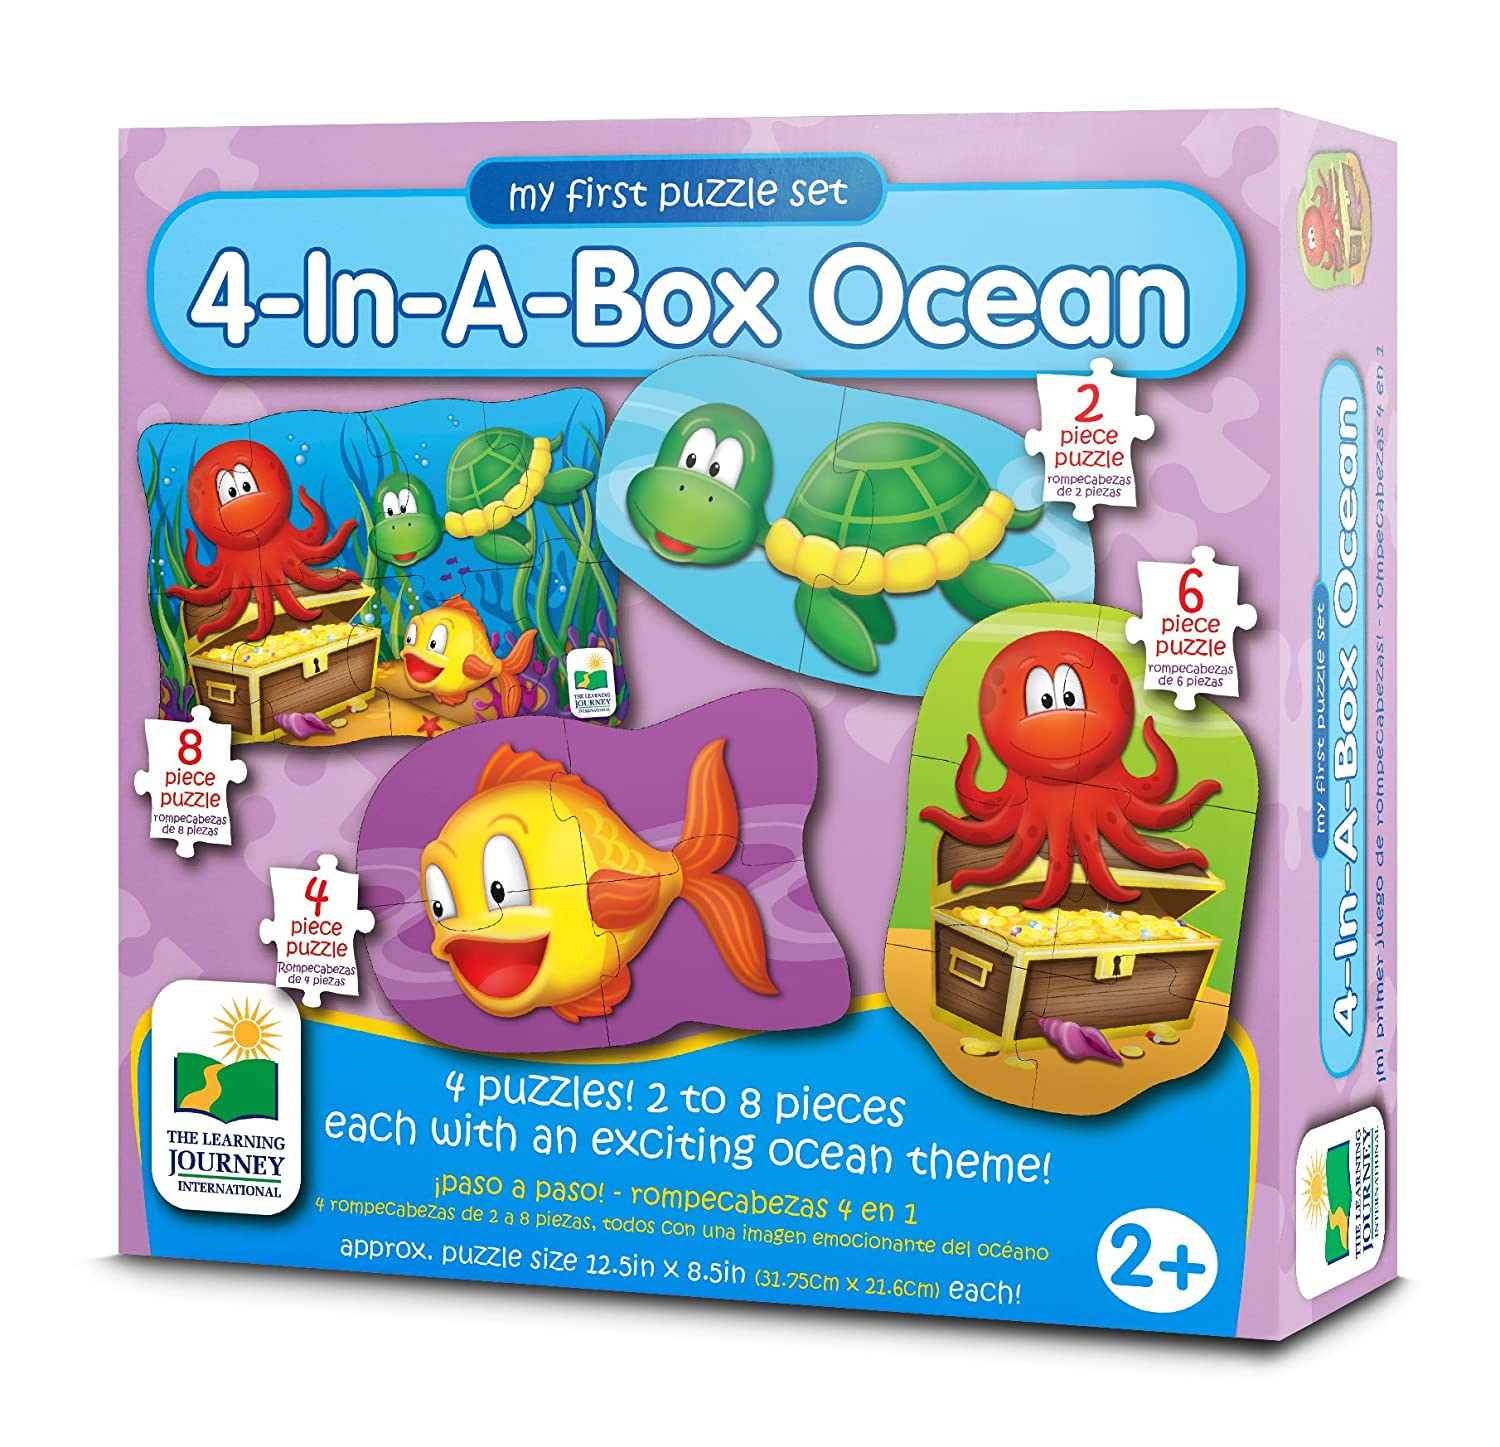 amazon com the learning journey my first puzzle sets 4 in a box